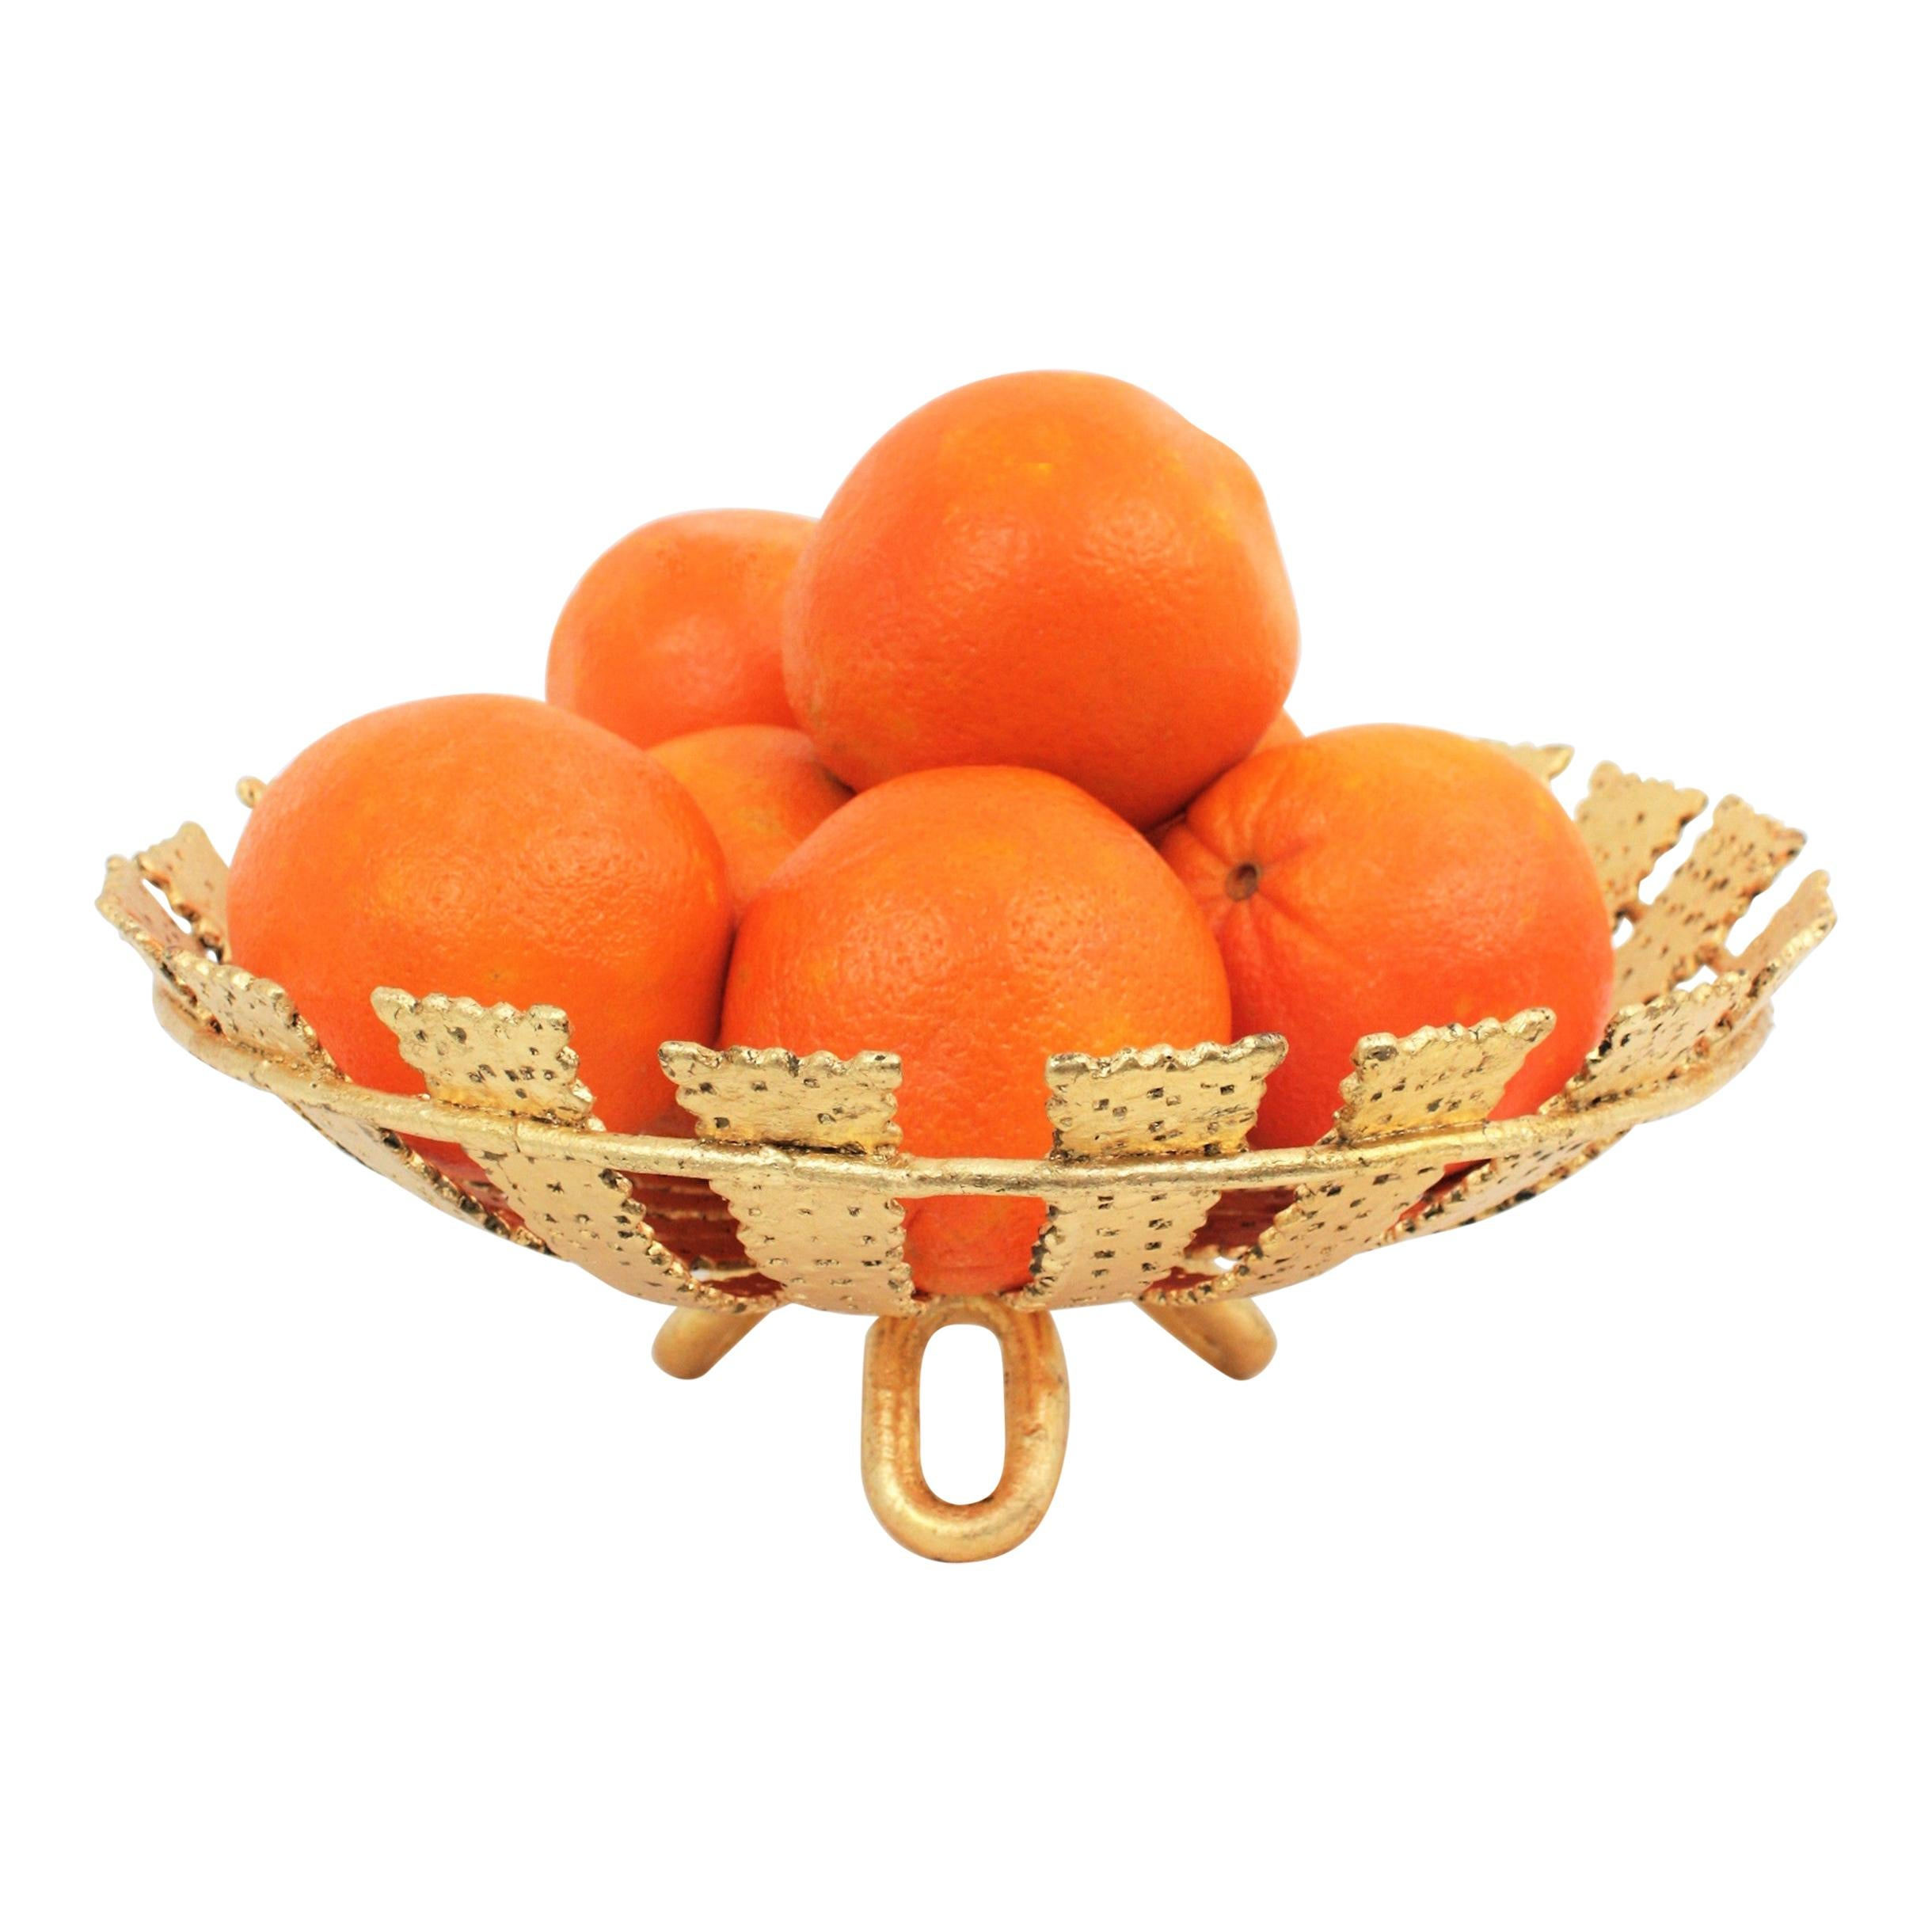 Sunburst Centerpiece or Footed Fruit Bowl in Gilt Wrought Iron